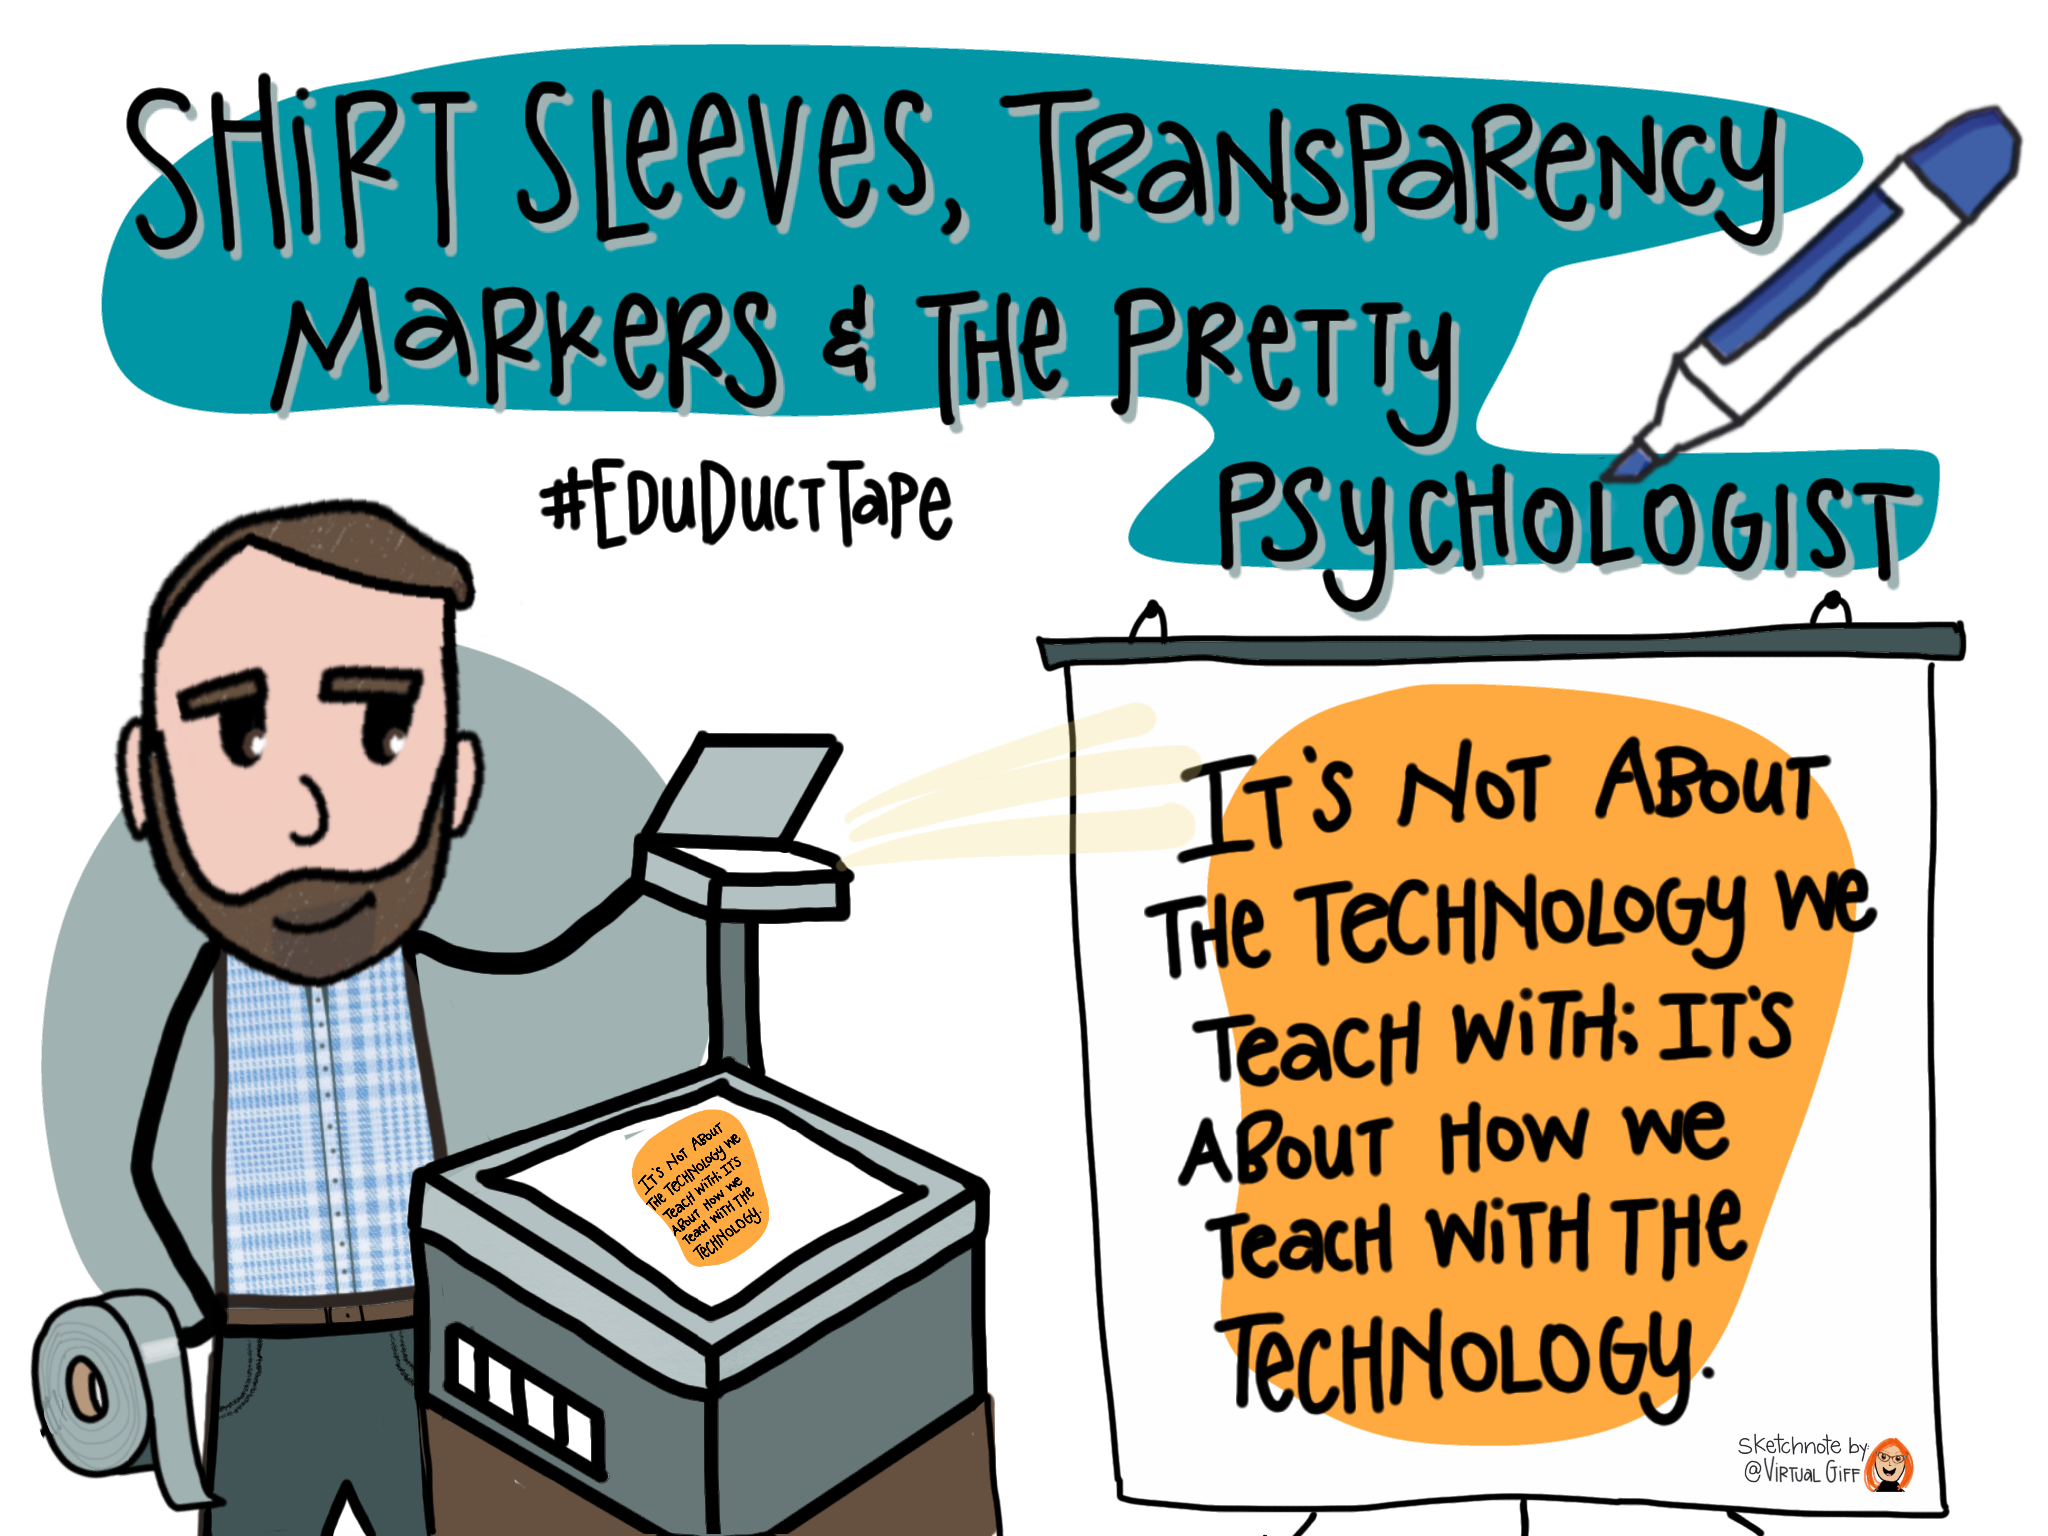 """This sketchnote shows the title of Chapter 5 of the Educational Duct Tape Book: """"Shirt Sleeves, Transparency Markers and the Pretty Psychologist."""" It shows Jake holding a roll of duct tape and standing by a transparency projector that is projecting the quote """"""""It's not about the technology we teach with; it's about how we teach with the technology!"""""""